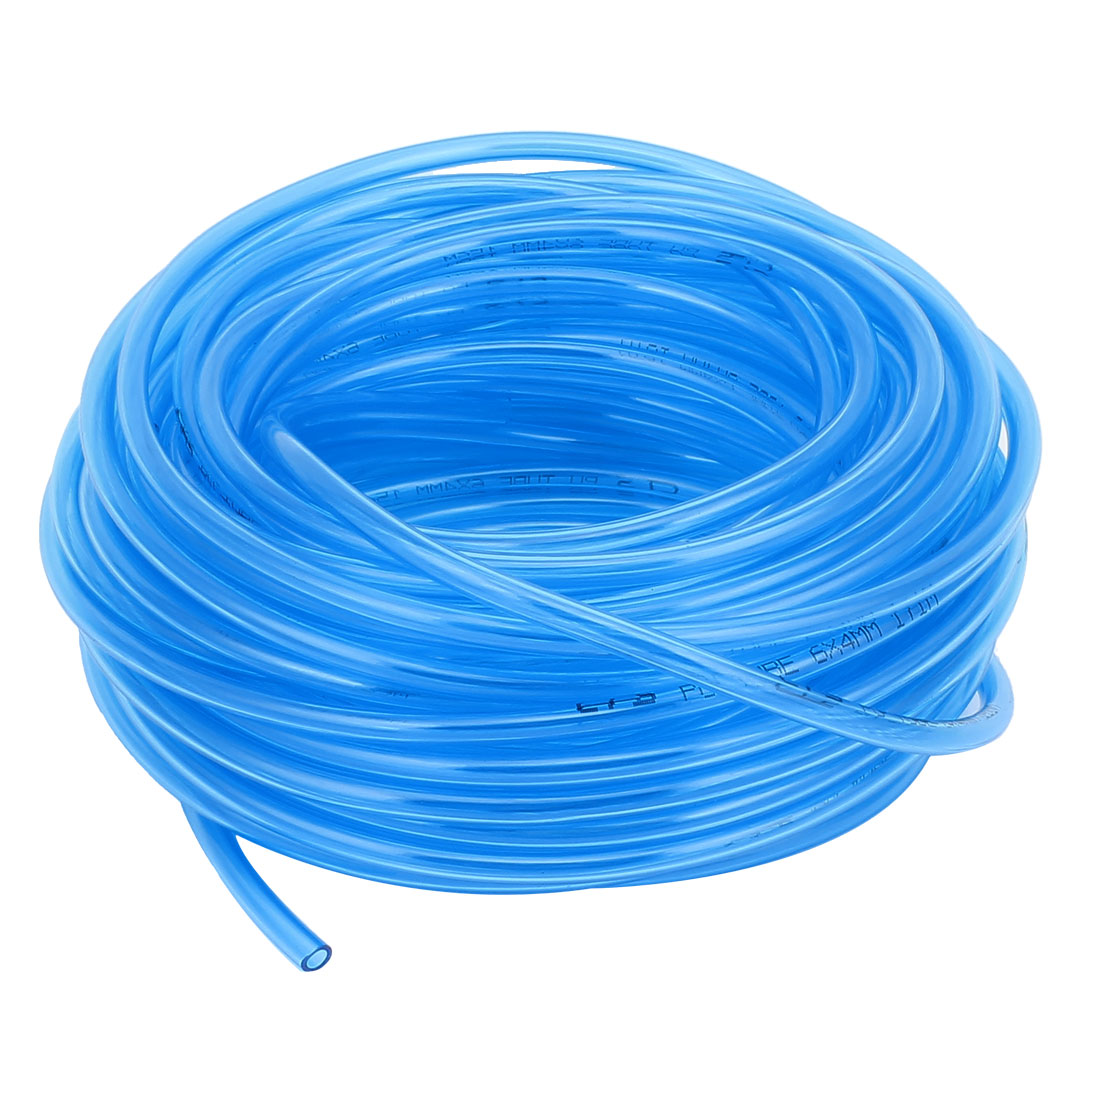 6mm OD x 4mm ID PU Pneumatic Air Tubing Pipe Hose 18 Meter 59ft Blue